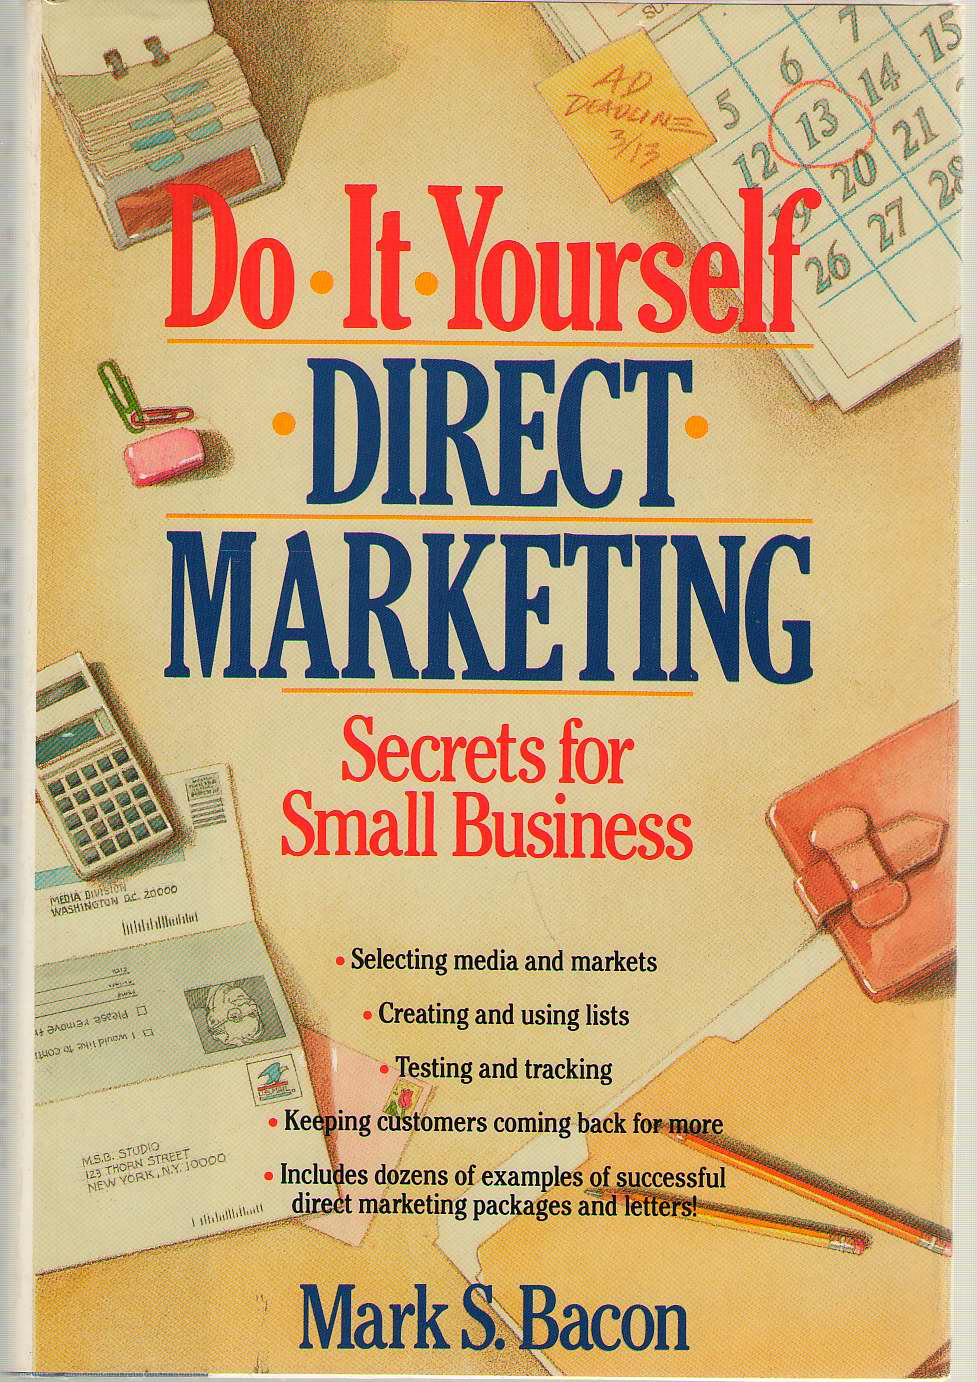 Image for Do-it-yourself Direct Marketing Secrets for Small Business